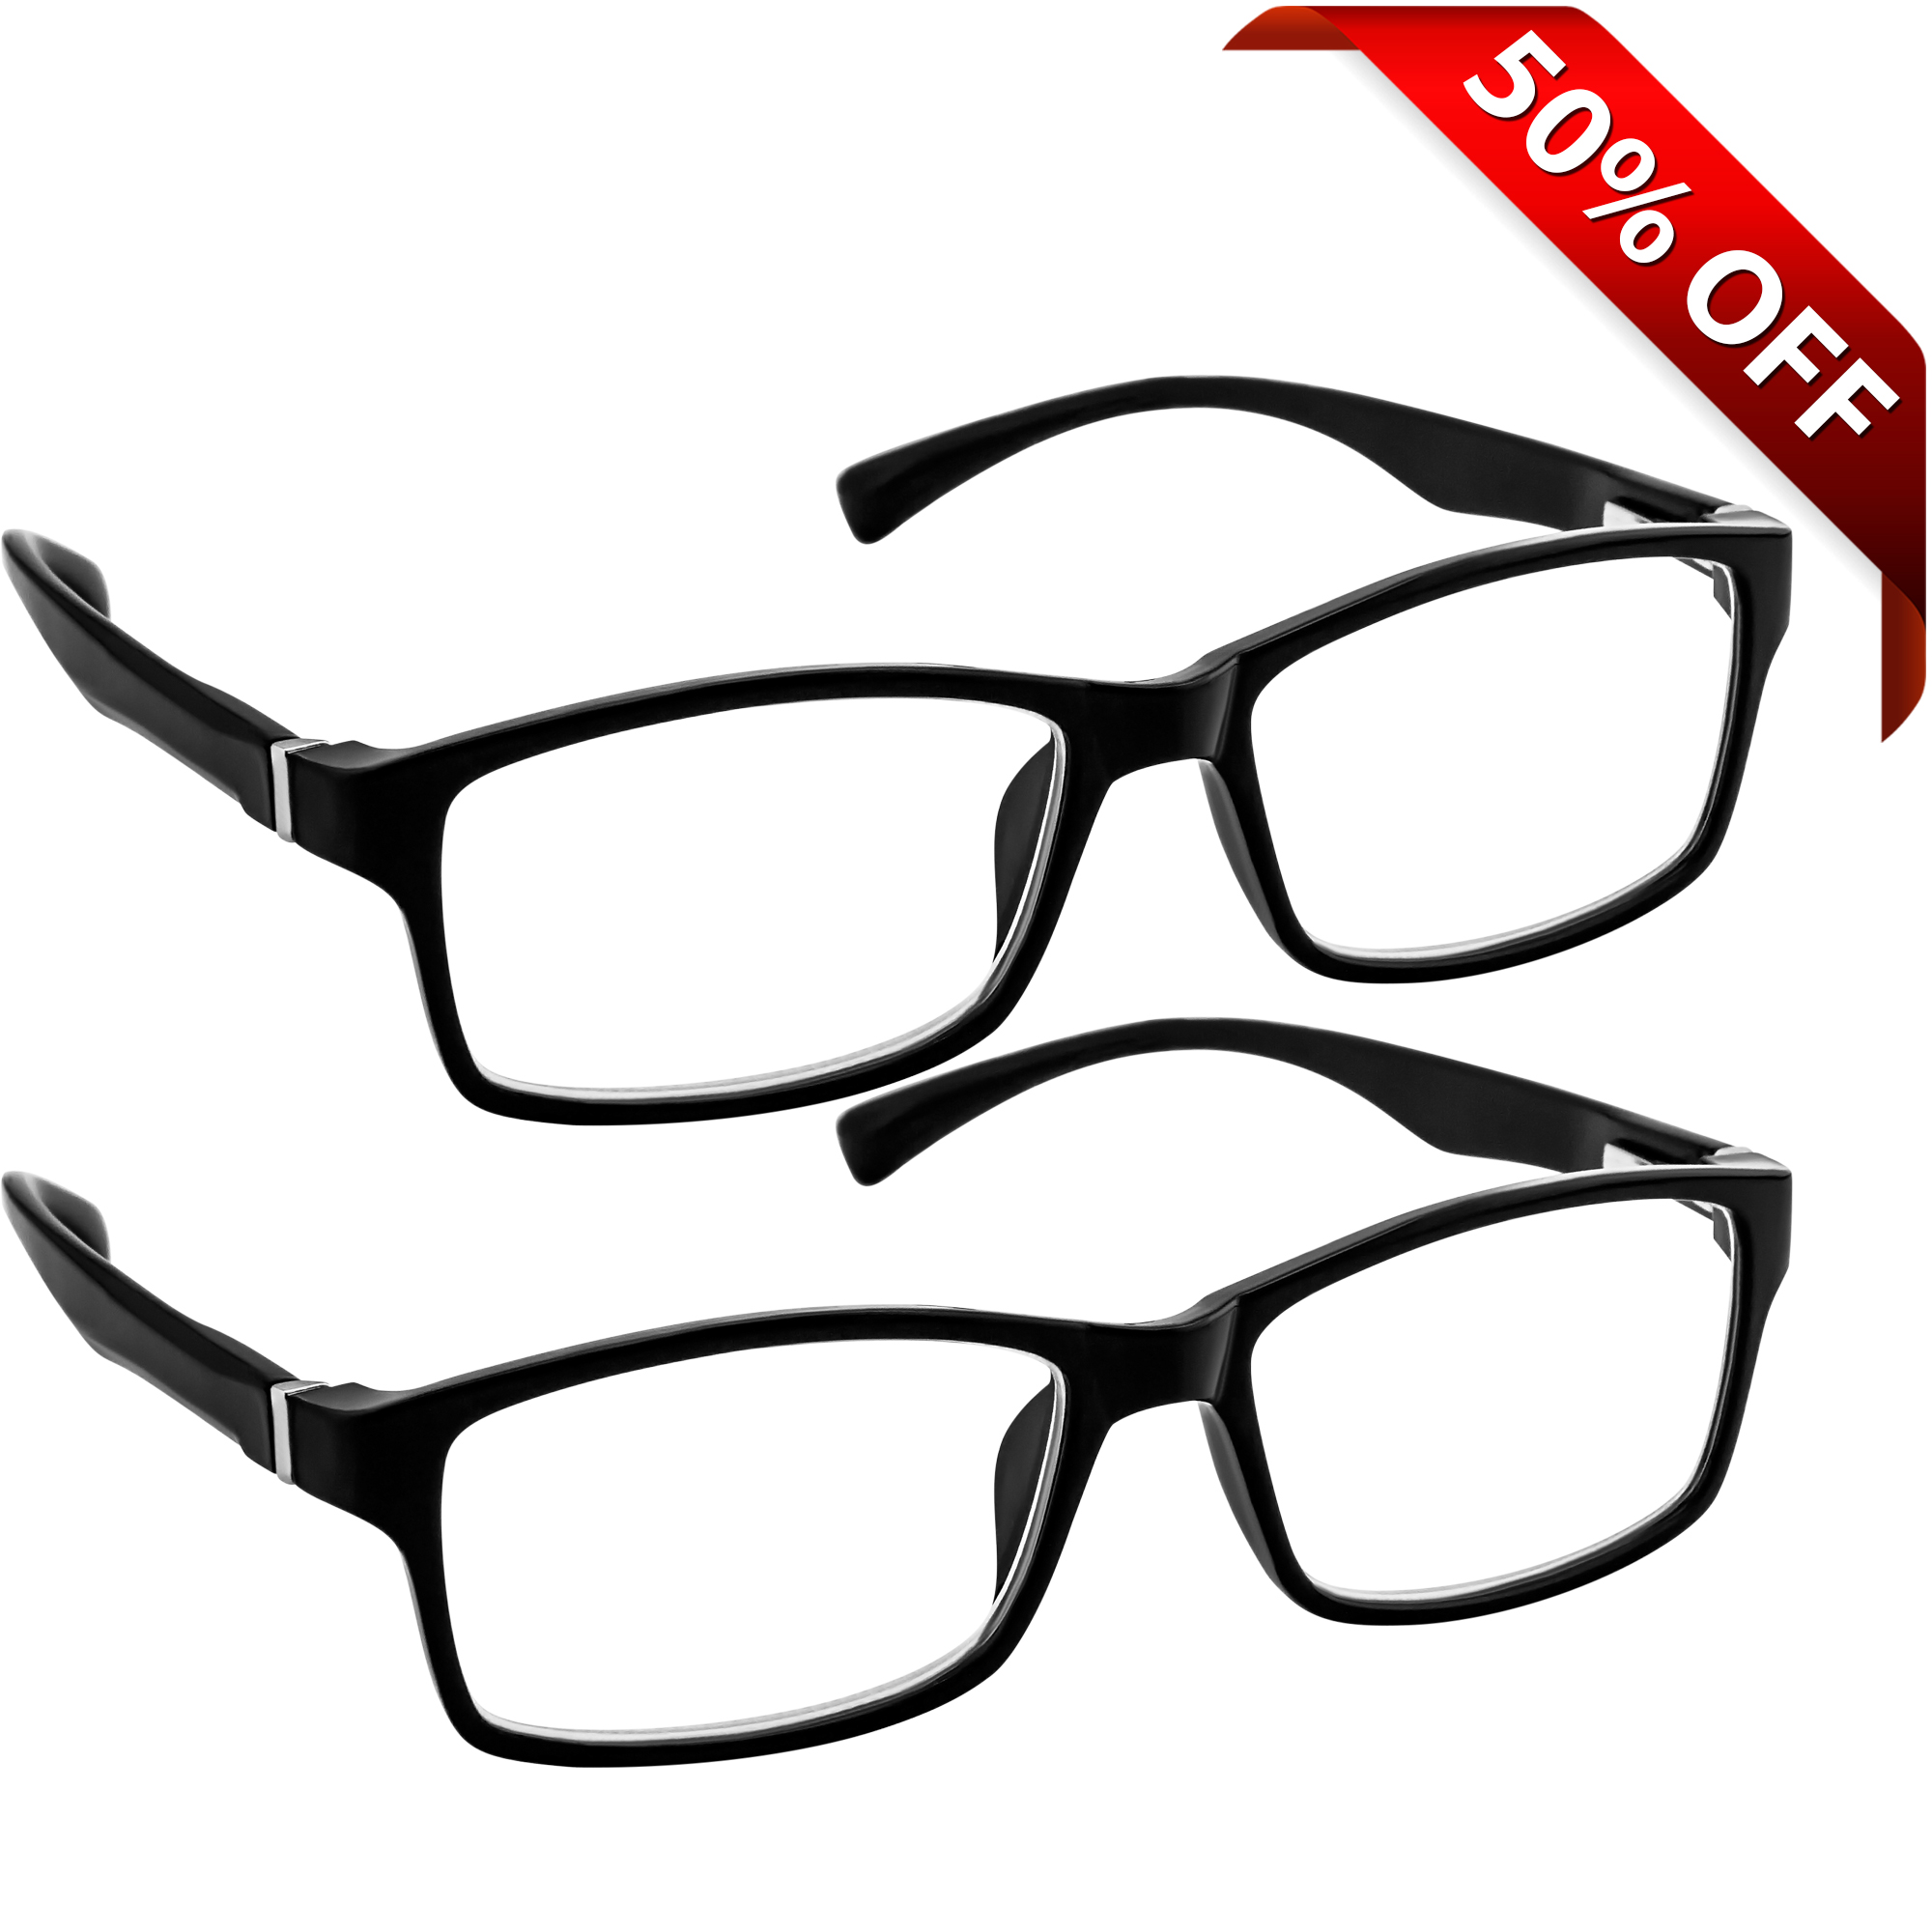 Computer Reading Glasses 1.50 | Protection yourself from Blue Light UV and Glare - Walmart.com | Tuggl